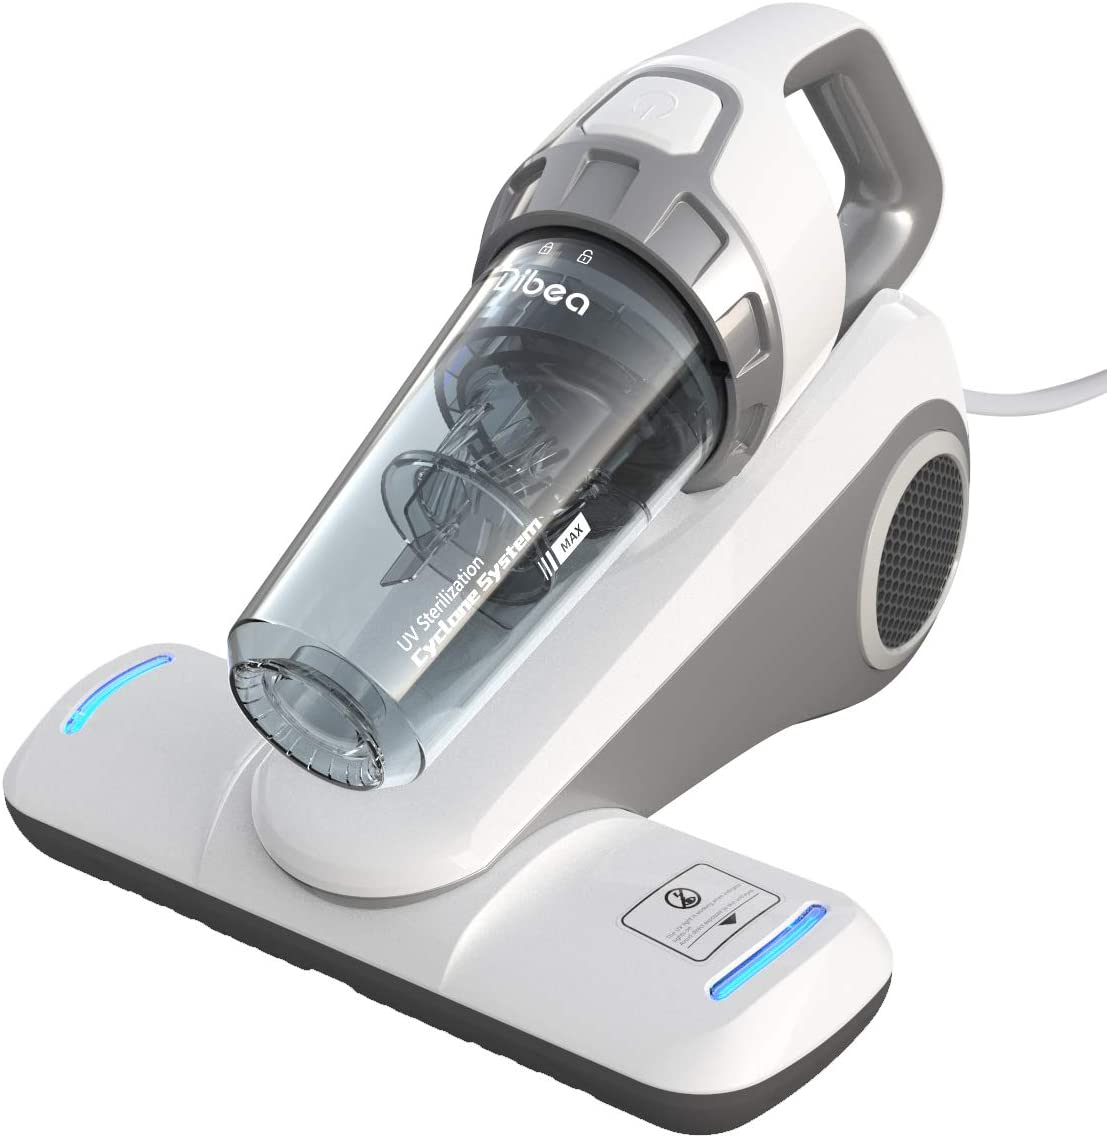 Dibea Handheld Bed Vacuum Cleaner With Roller Brush